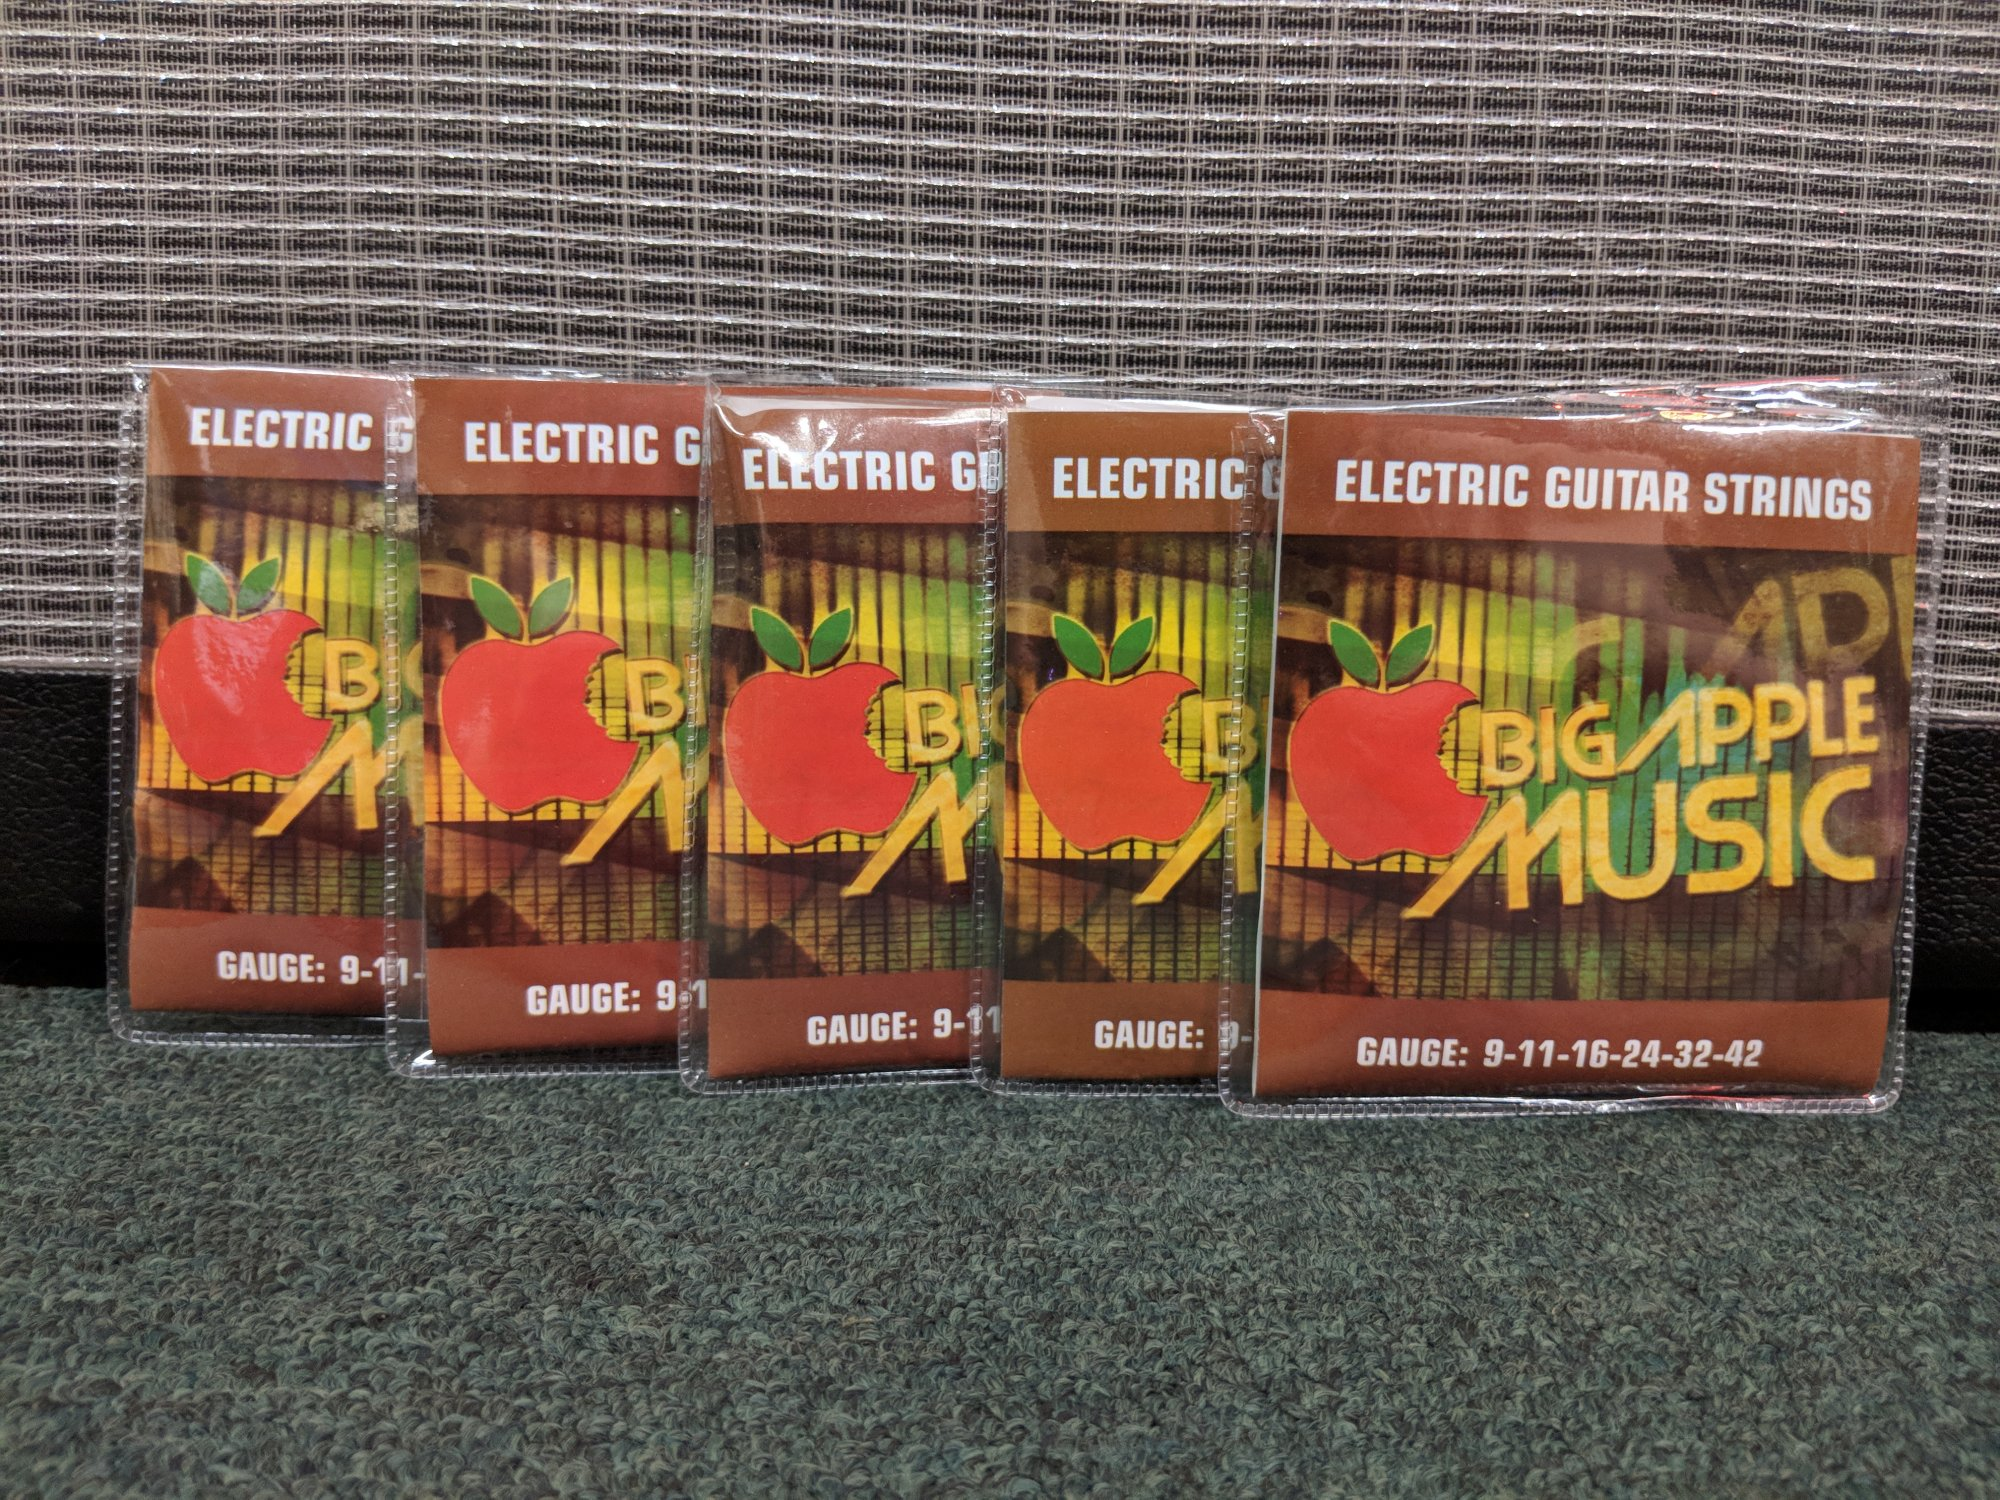 Big Apple Music Electric Guitar Strings 9-42 - 5 Pack